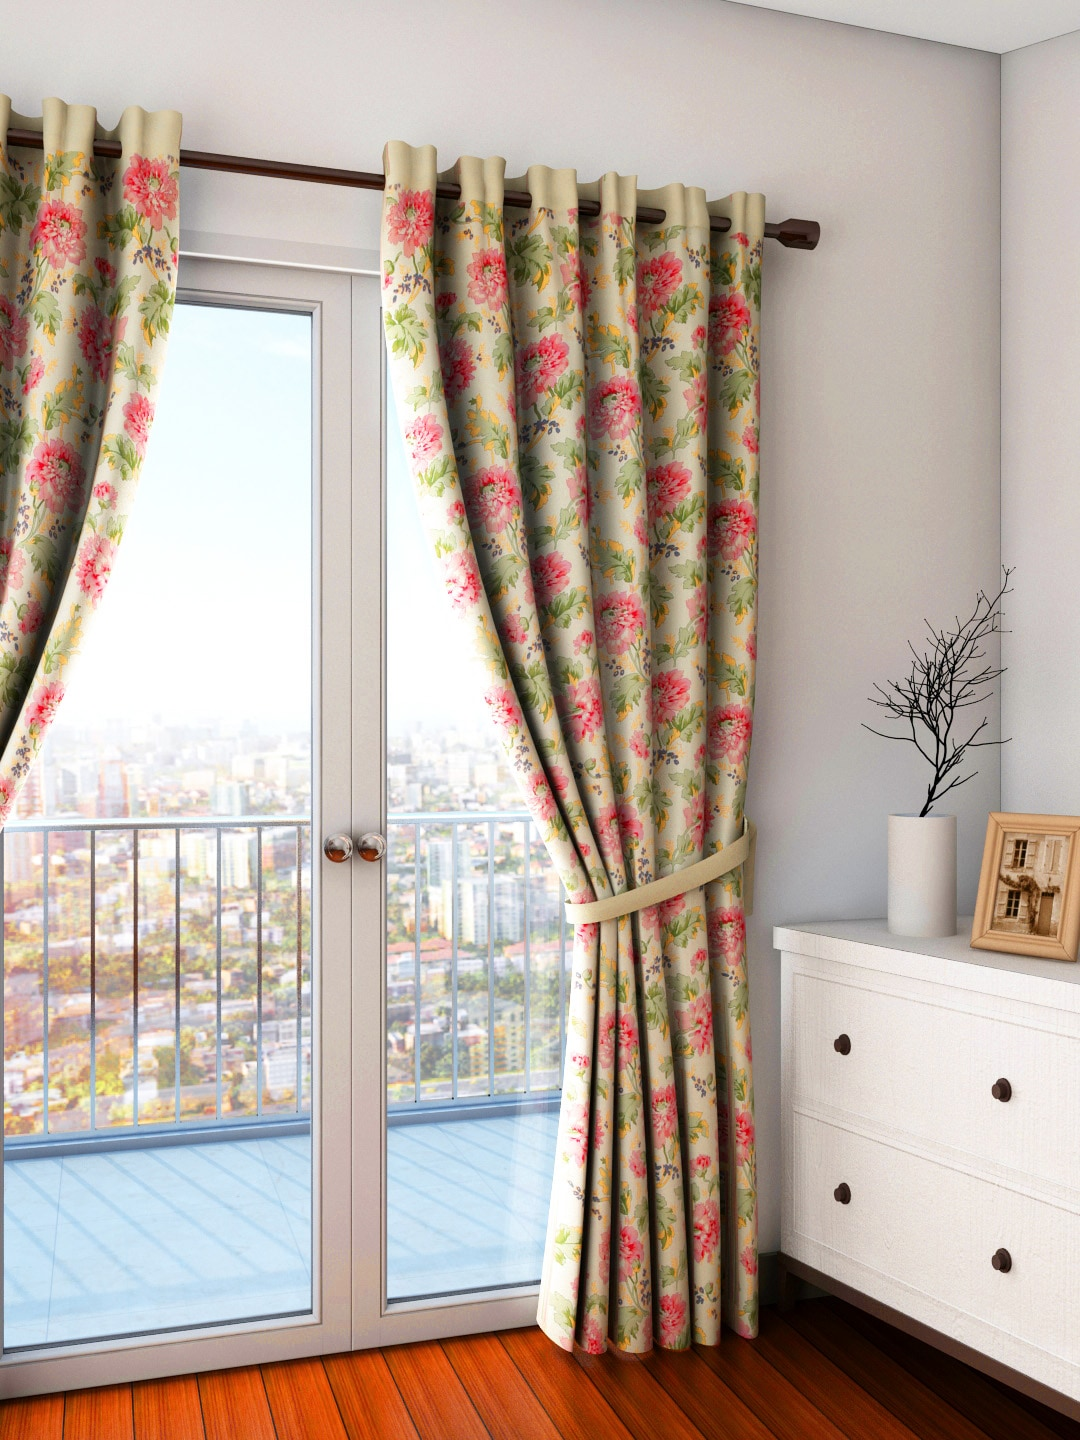 Top curtains brands in india curtain menzilperde net for What is the best window brand